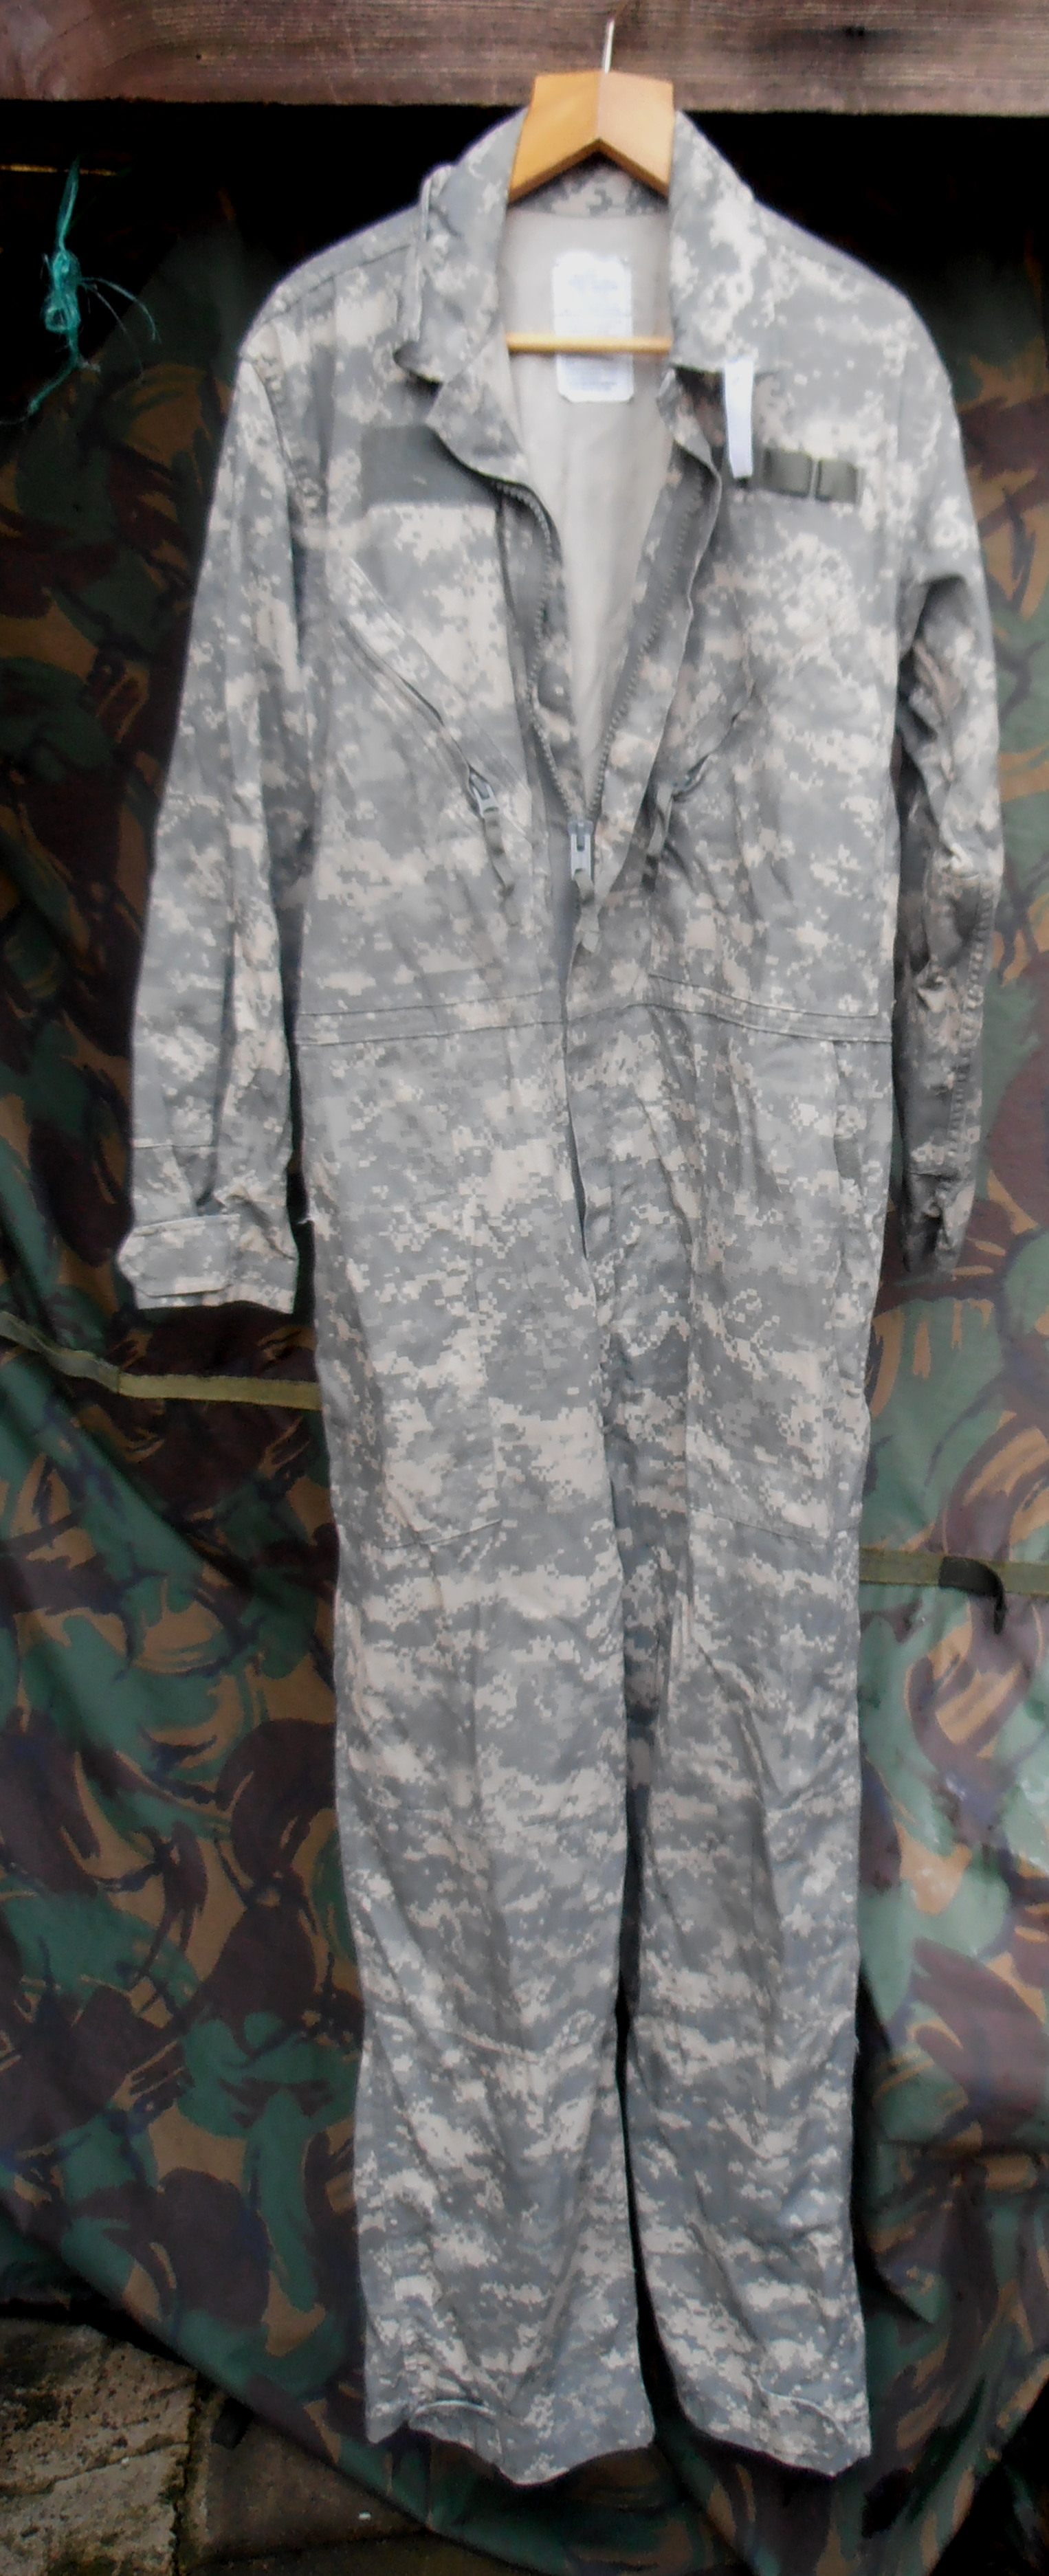 Goretex cold weather kit › us army acu pattern mechanics coverall